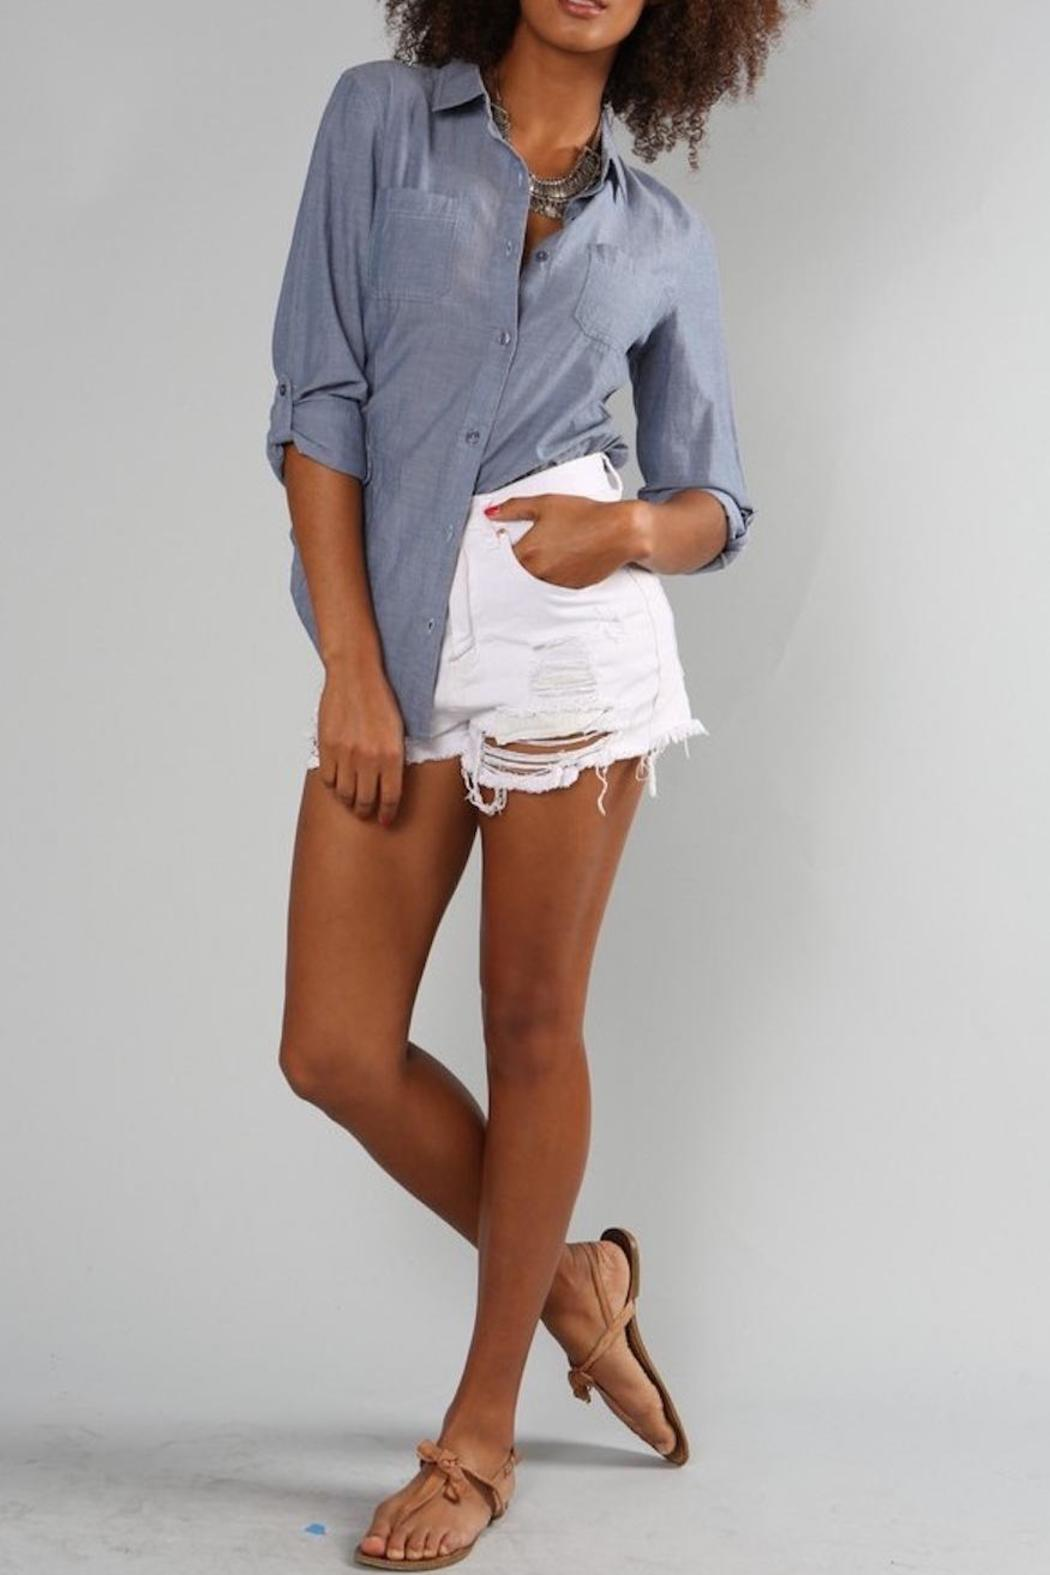 Ppla Chambray High Low Shirt From Texas By Diamond T Outfitters Shoptiques